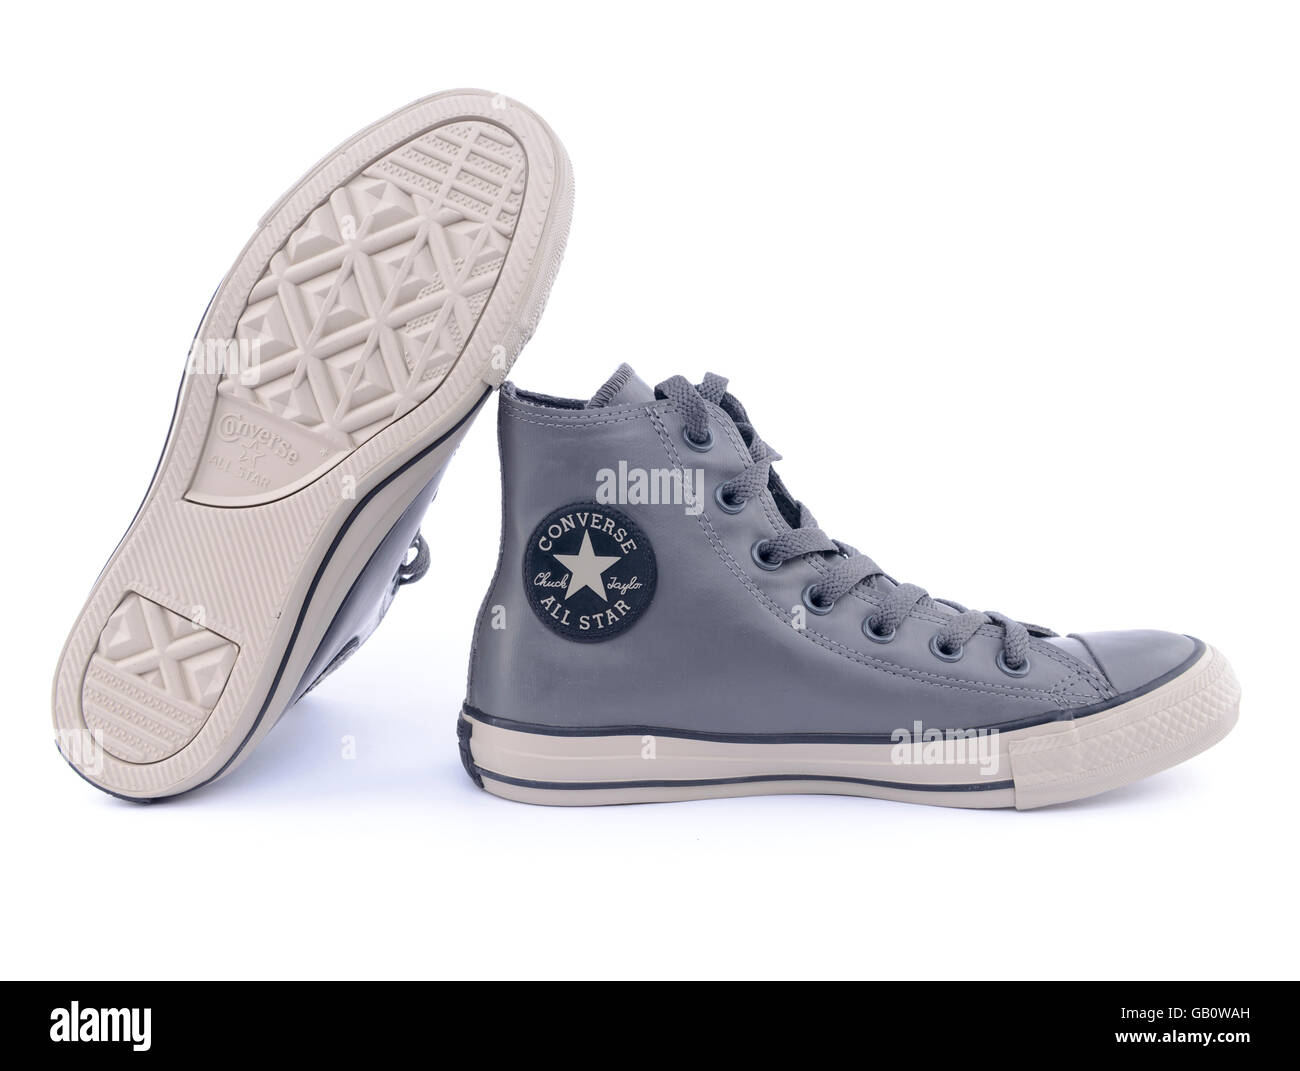 Pair of gray Converse Chuck Taylor All Star rubber sneakers - Stock Image